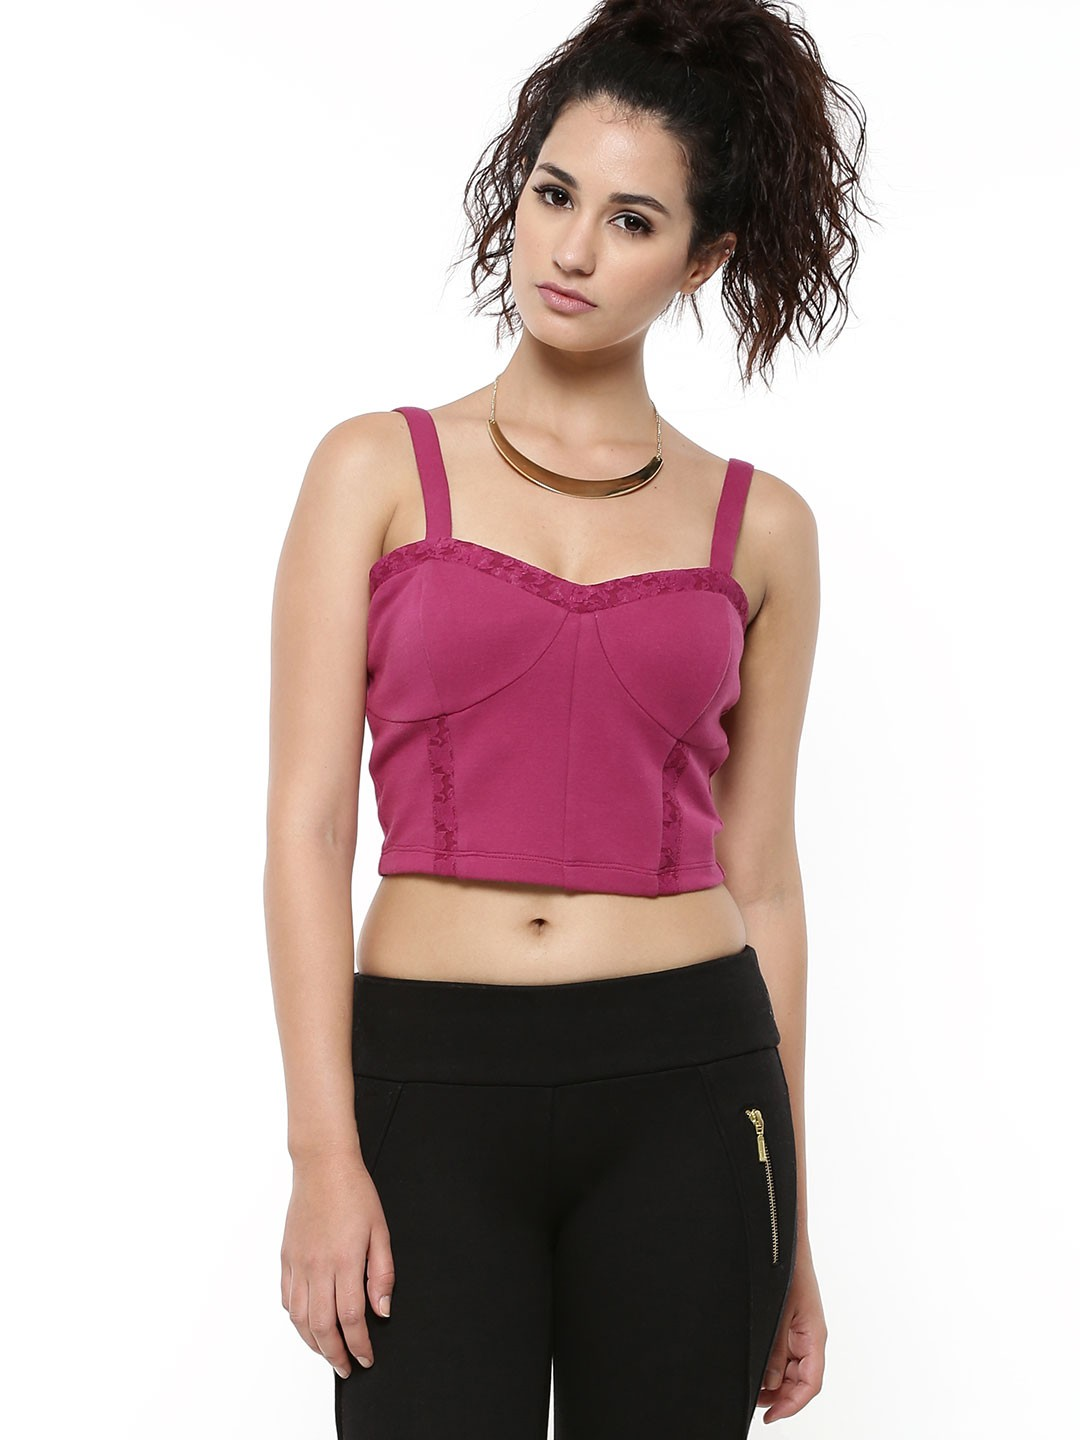 Click here to find out about the Velvet Cut Out Bralet from Boohoo, part of our latest Evening Tops collection ready to shop online today!